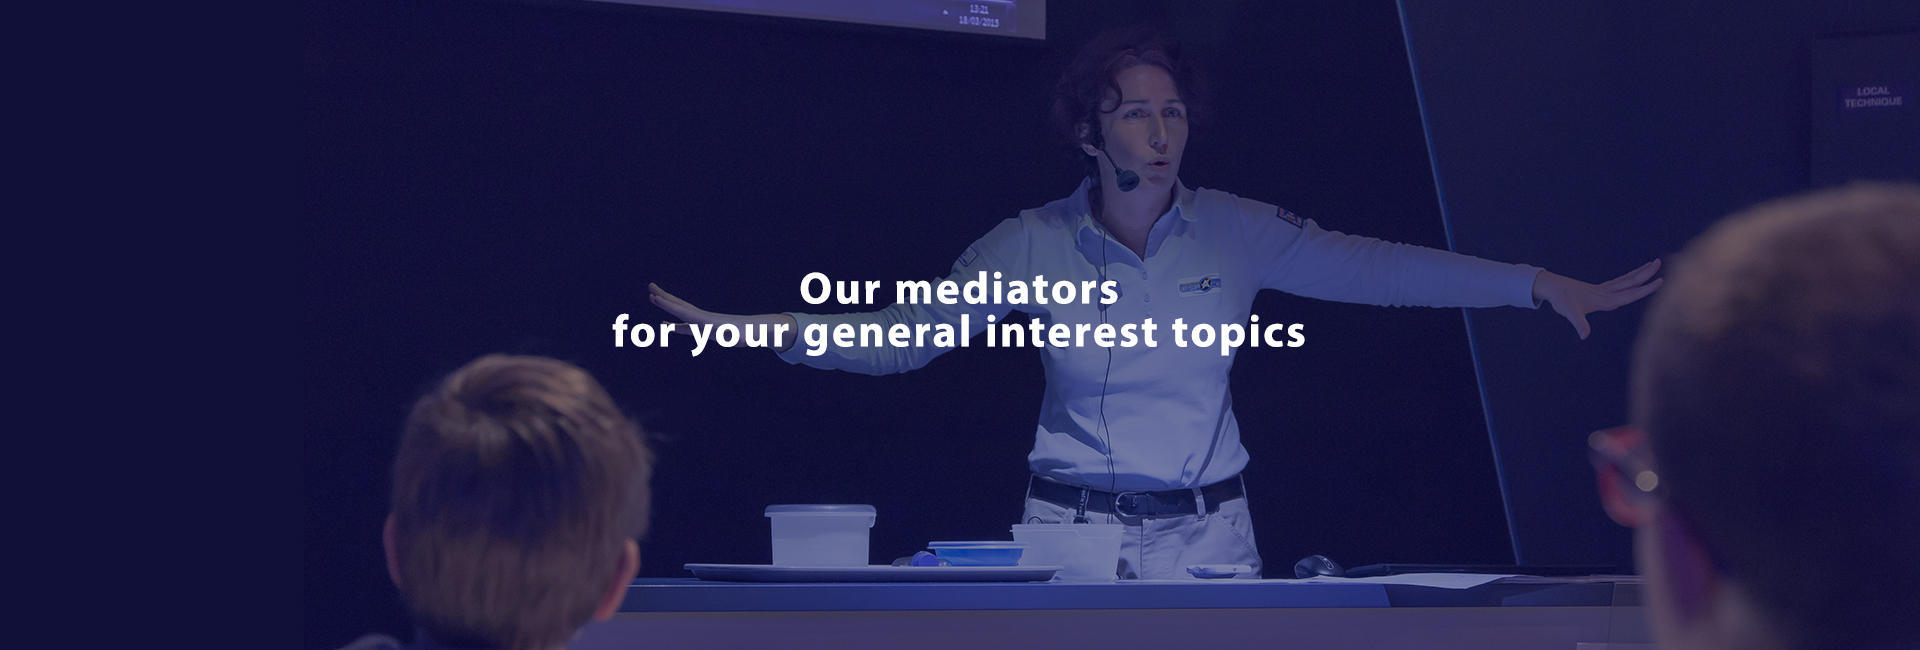 Our mediators for yours general interest topics